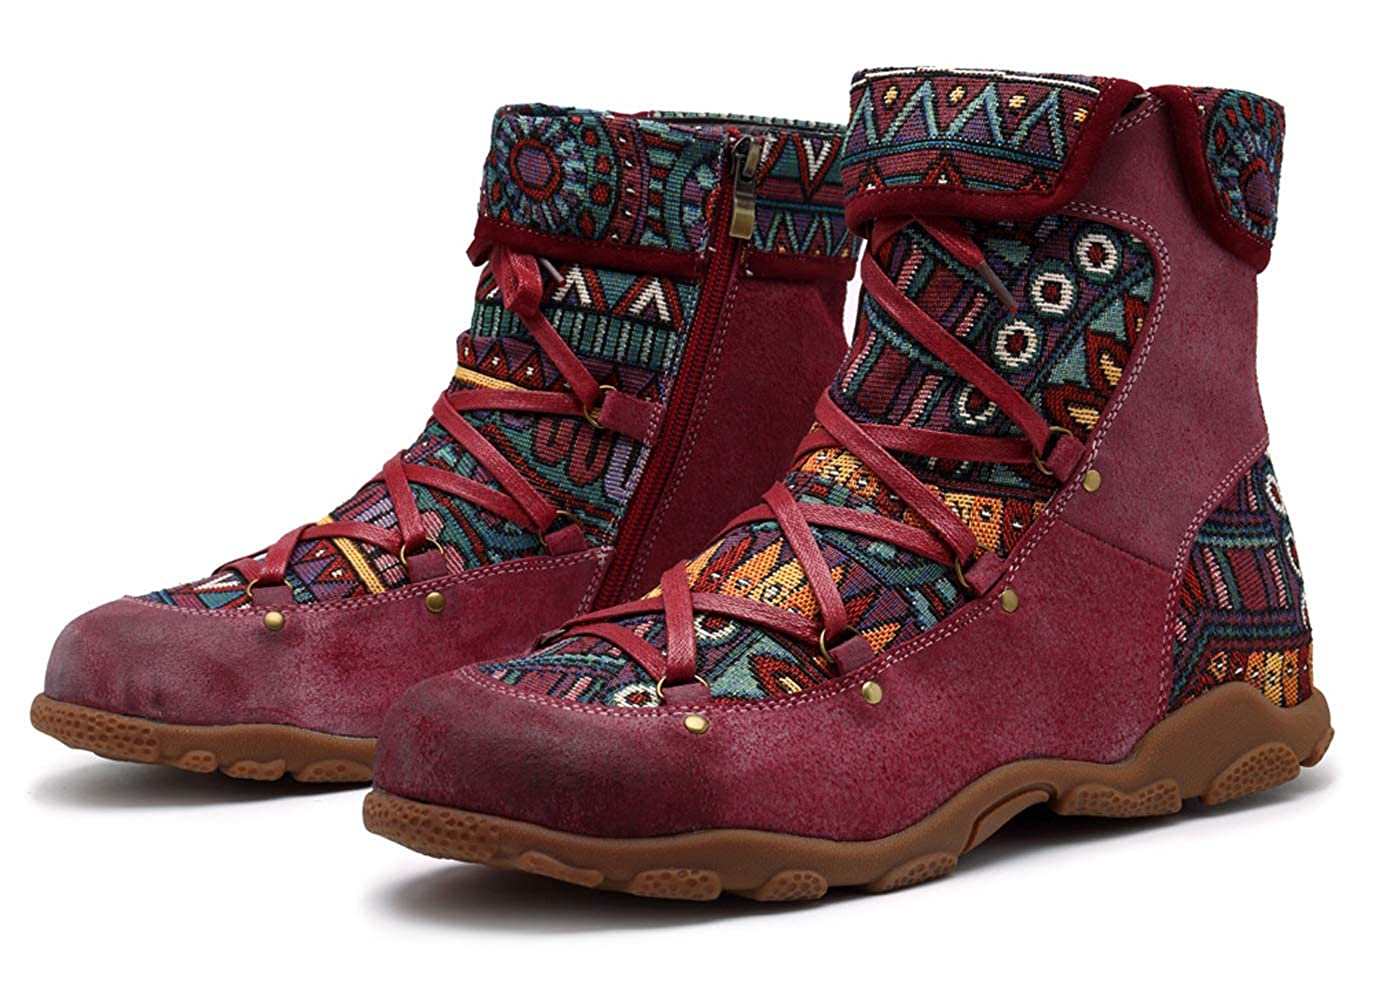 Honeystore Womens Booties Shoes Side Zipper Leather Boots Retro Boho Carving Print Round Toe